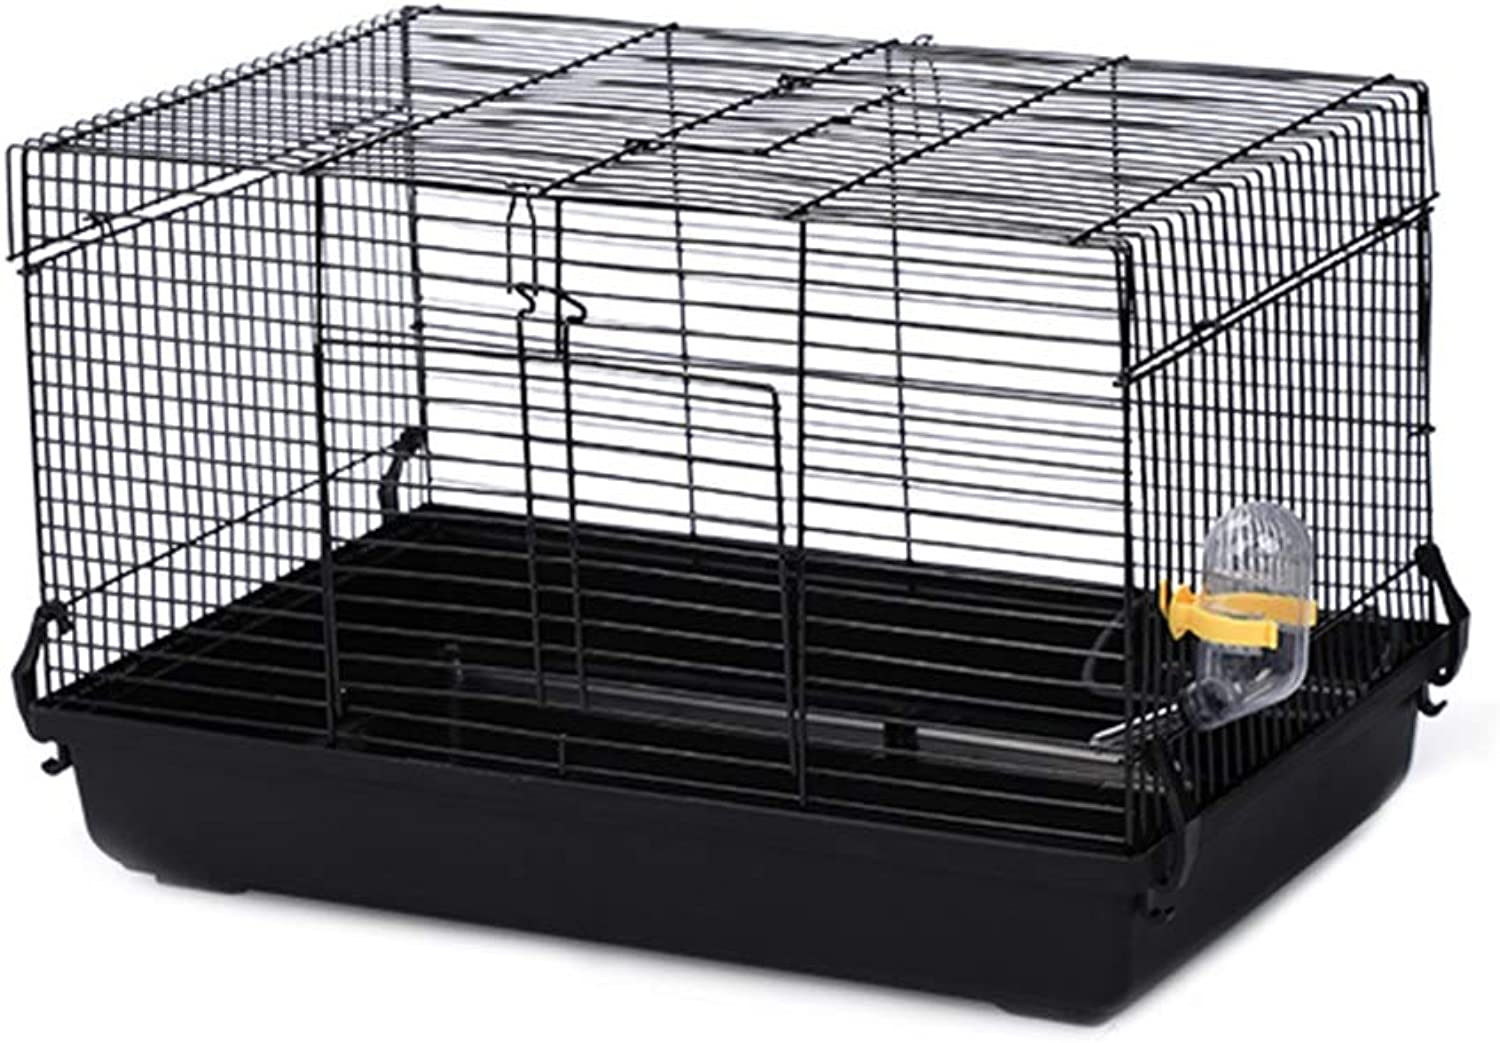 LSS Hamster Cage, Large Villa, Black Iron Wire Pet House For Small Hamsters And Gerbils